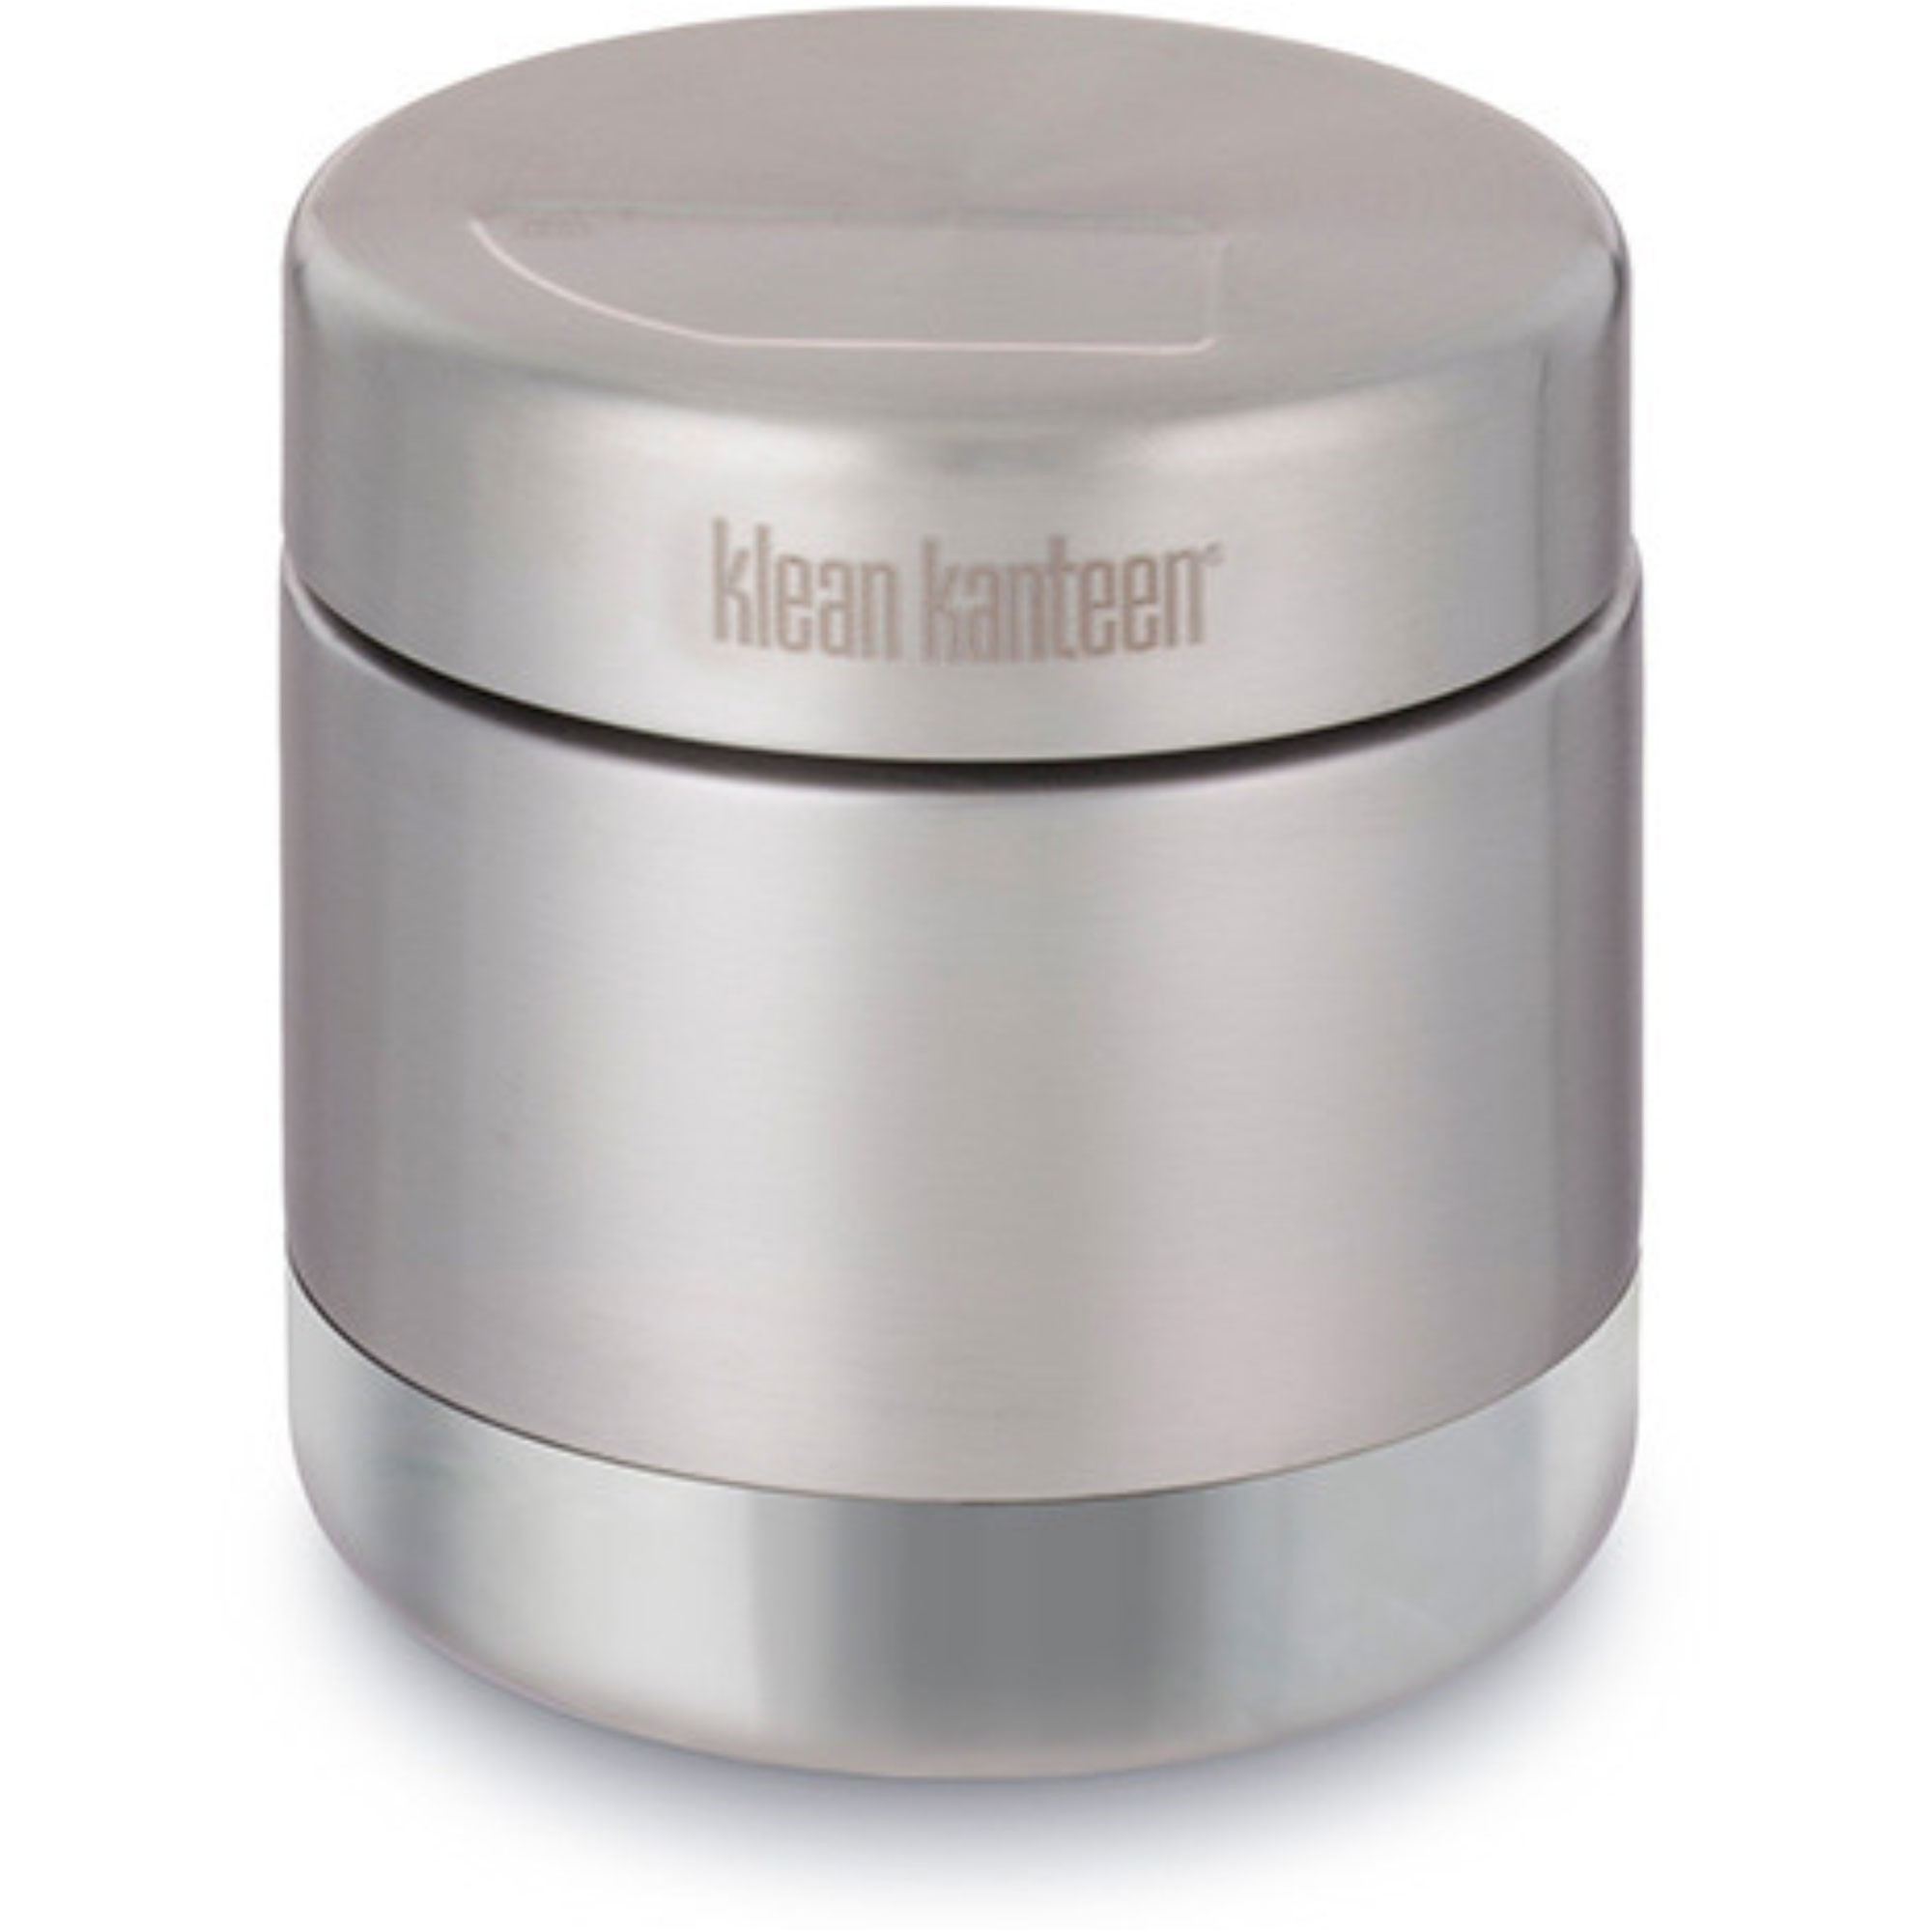 KLEAN KANTEEN - Insulated Food Canister - 237ml Stainless Steel